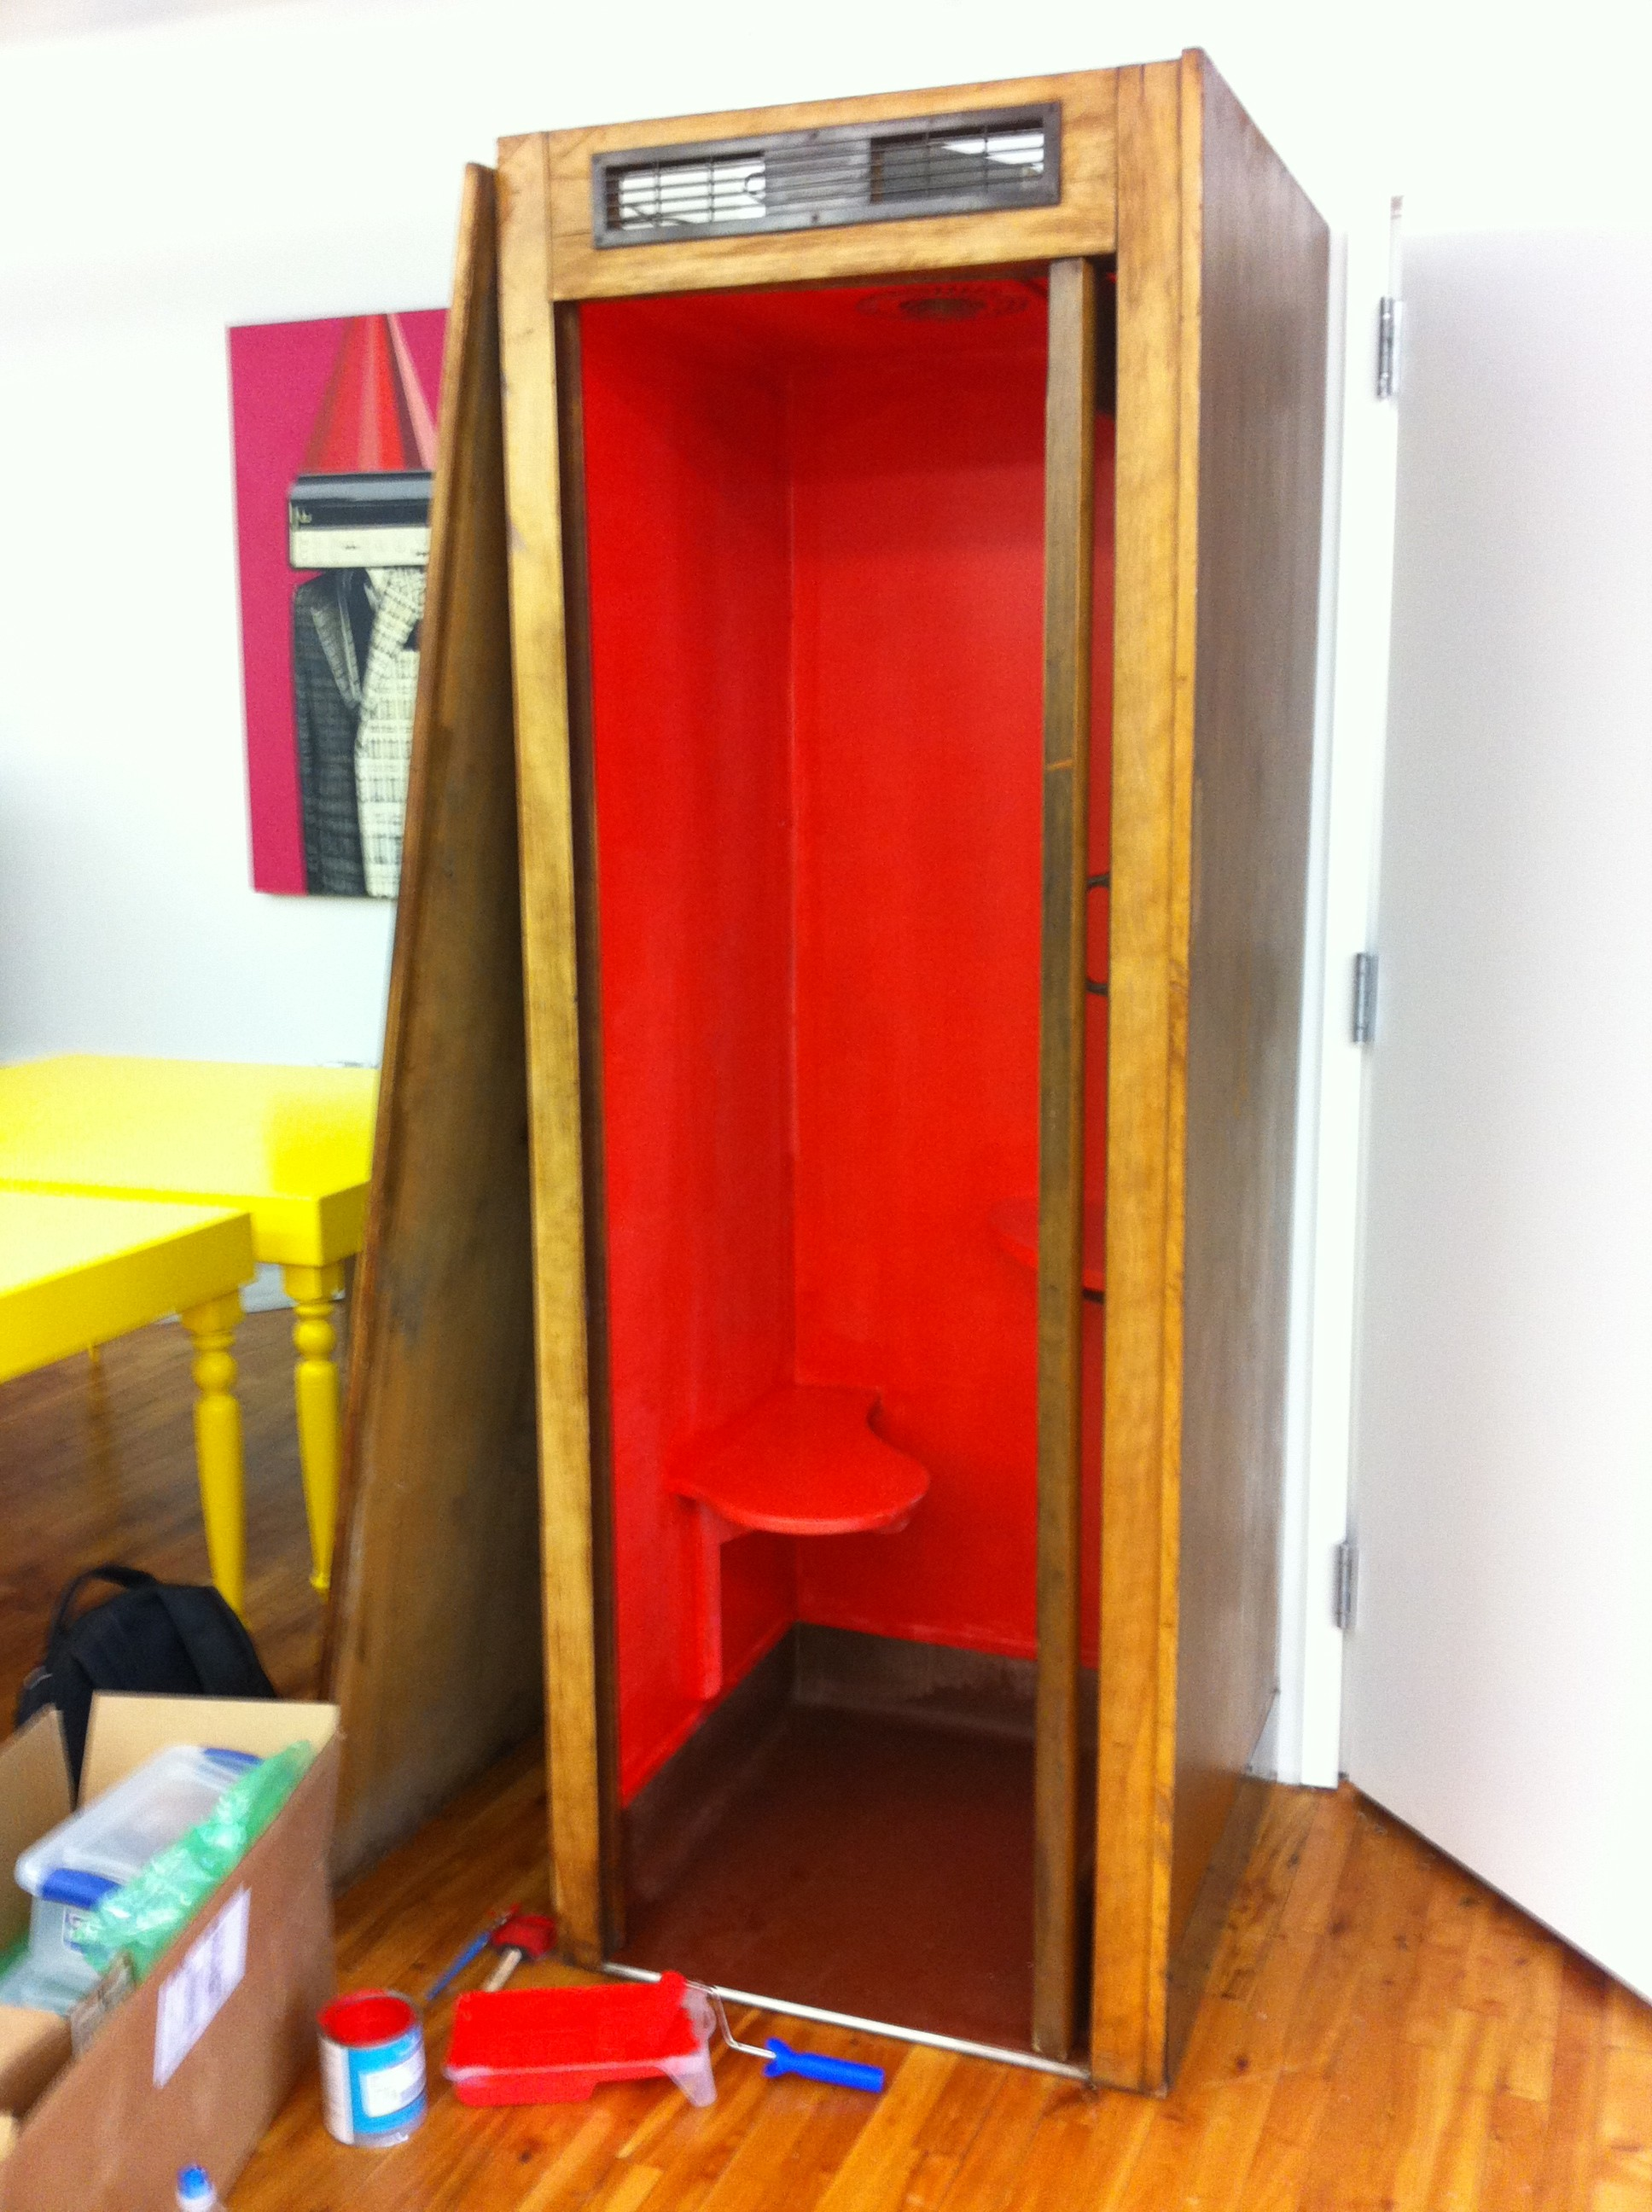 A pic of the red paint job for the phone booth